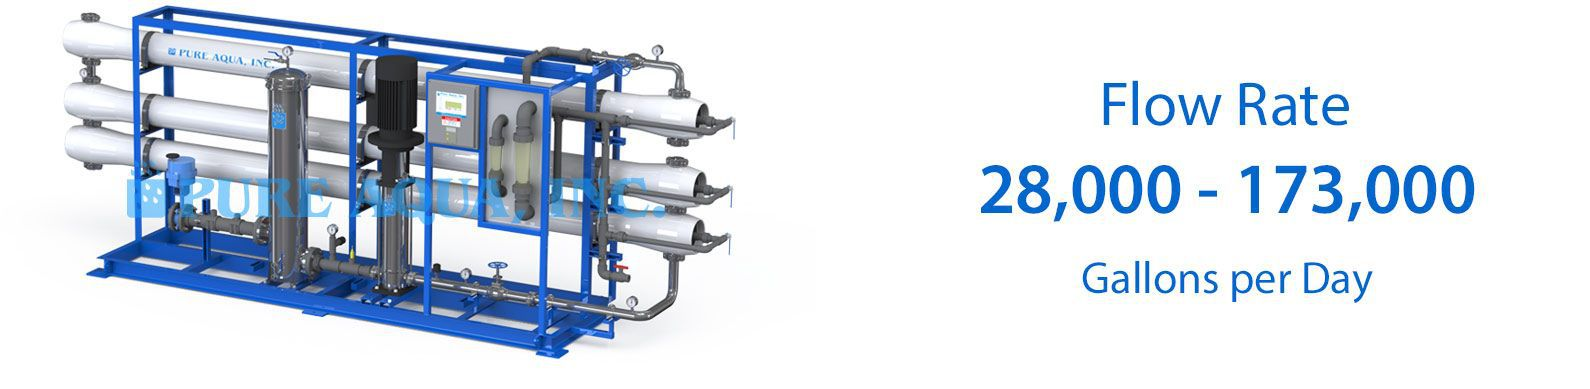 industrial reverse osmosis RO systems specifications